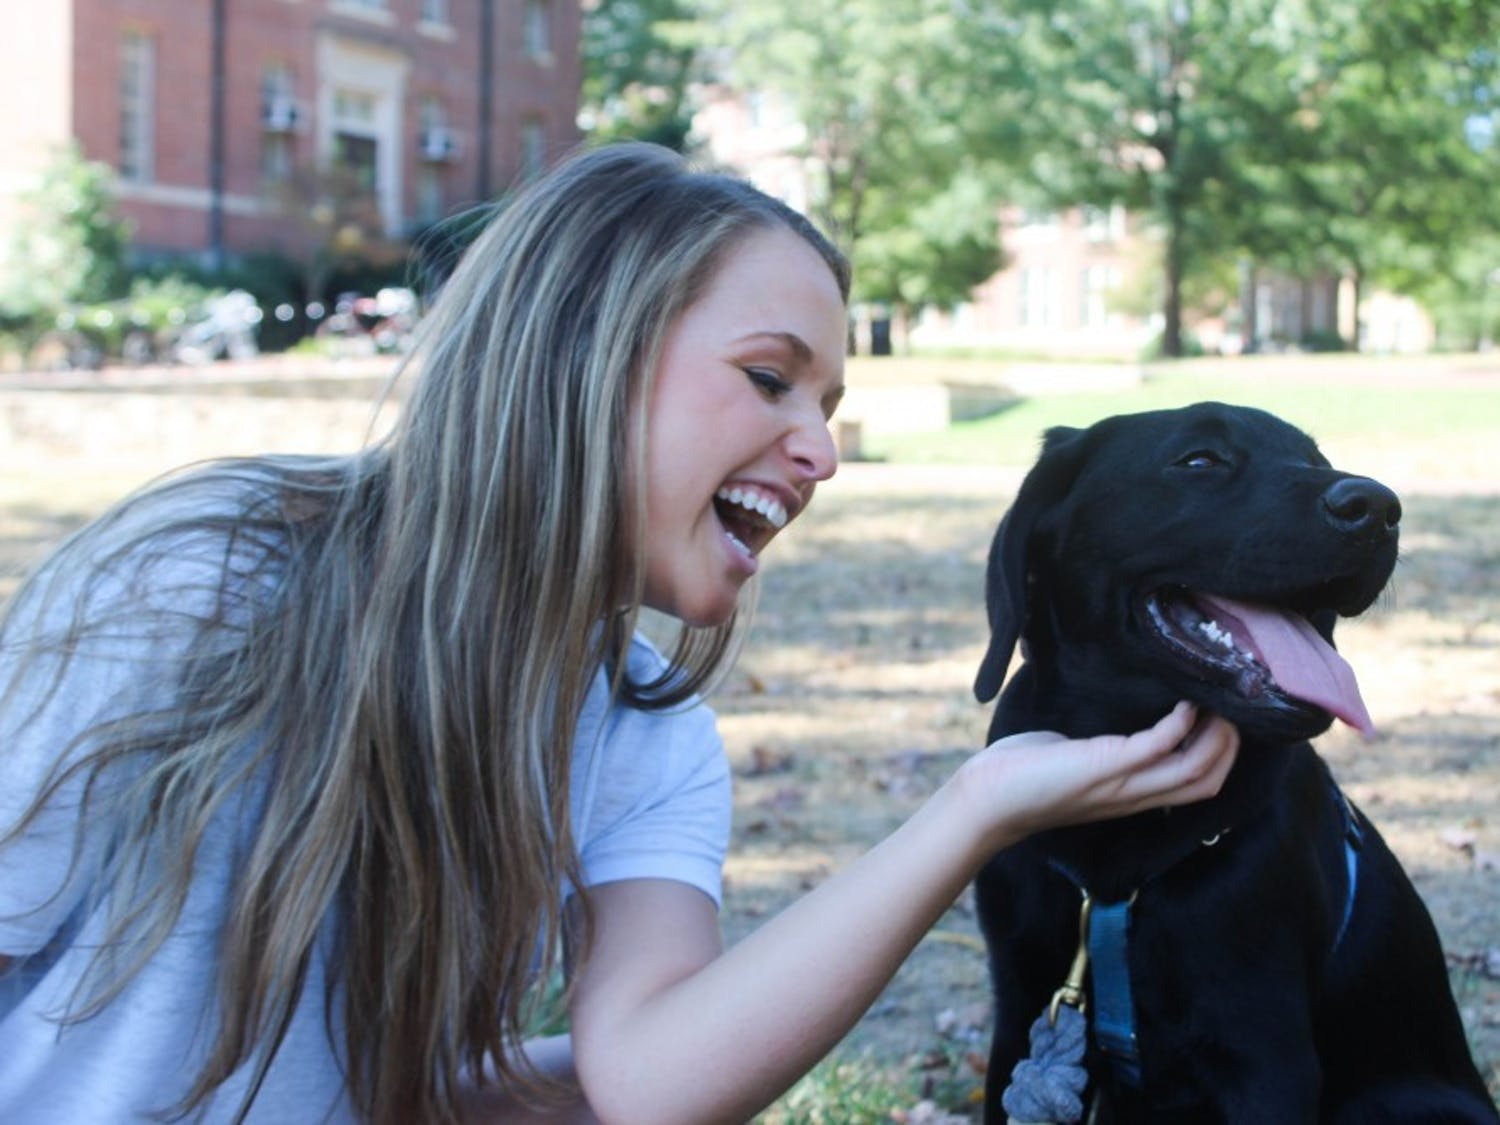 Junior exercise and sports science major Ashley Young petting Dean, the black lab puppy she is fostering with her roommate until January. In January, Dean will be trained to be a mobility service dog.